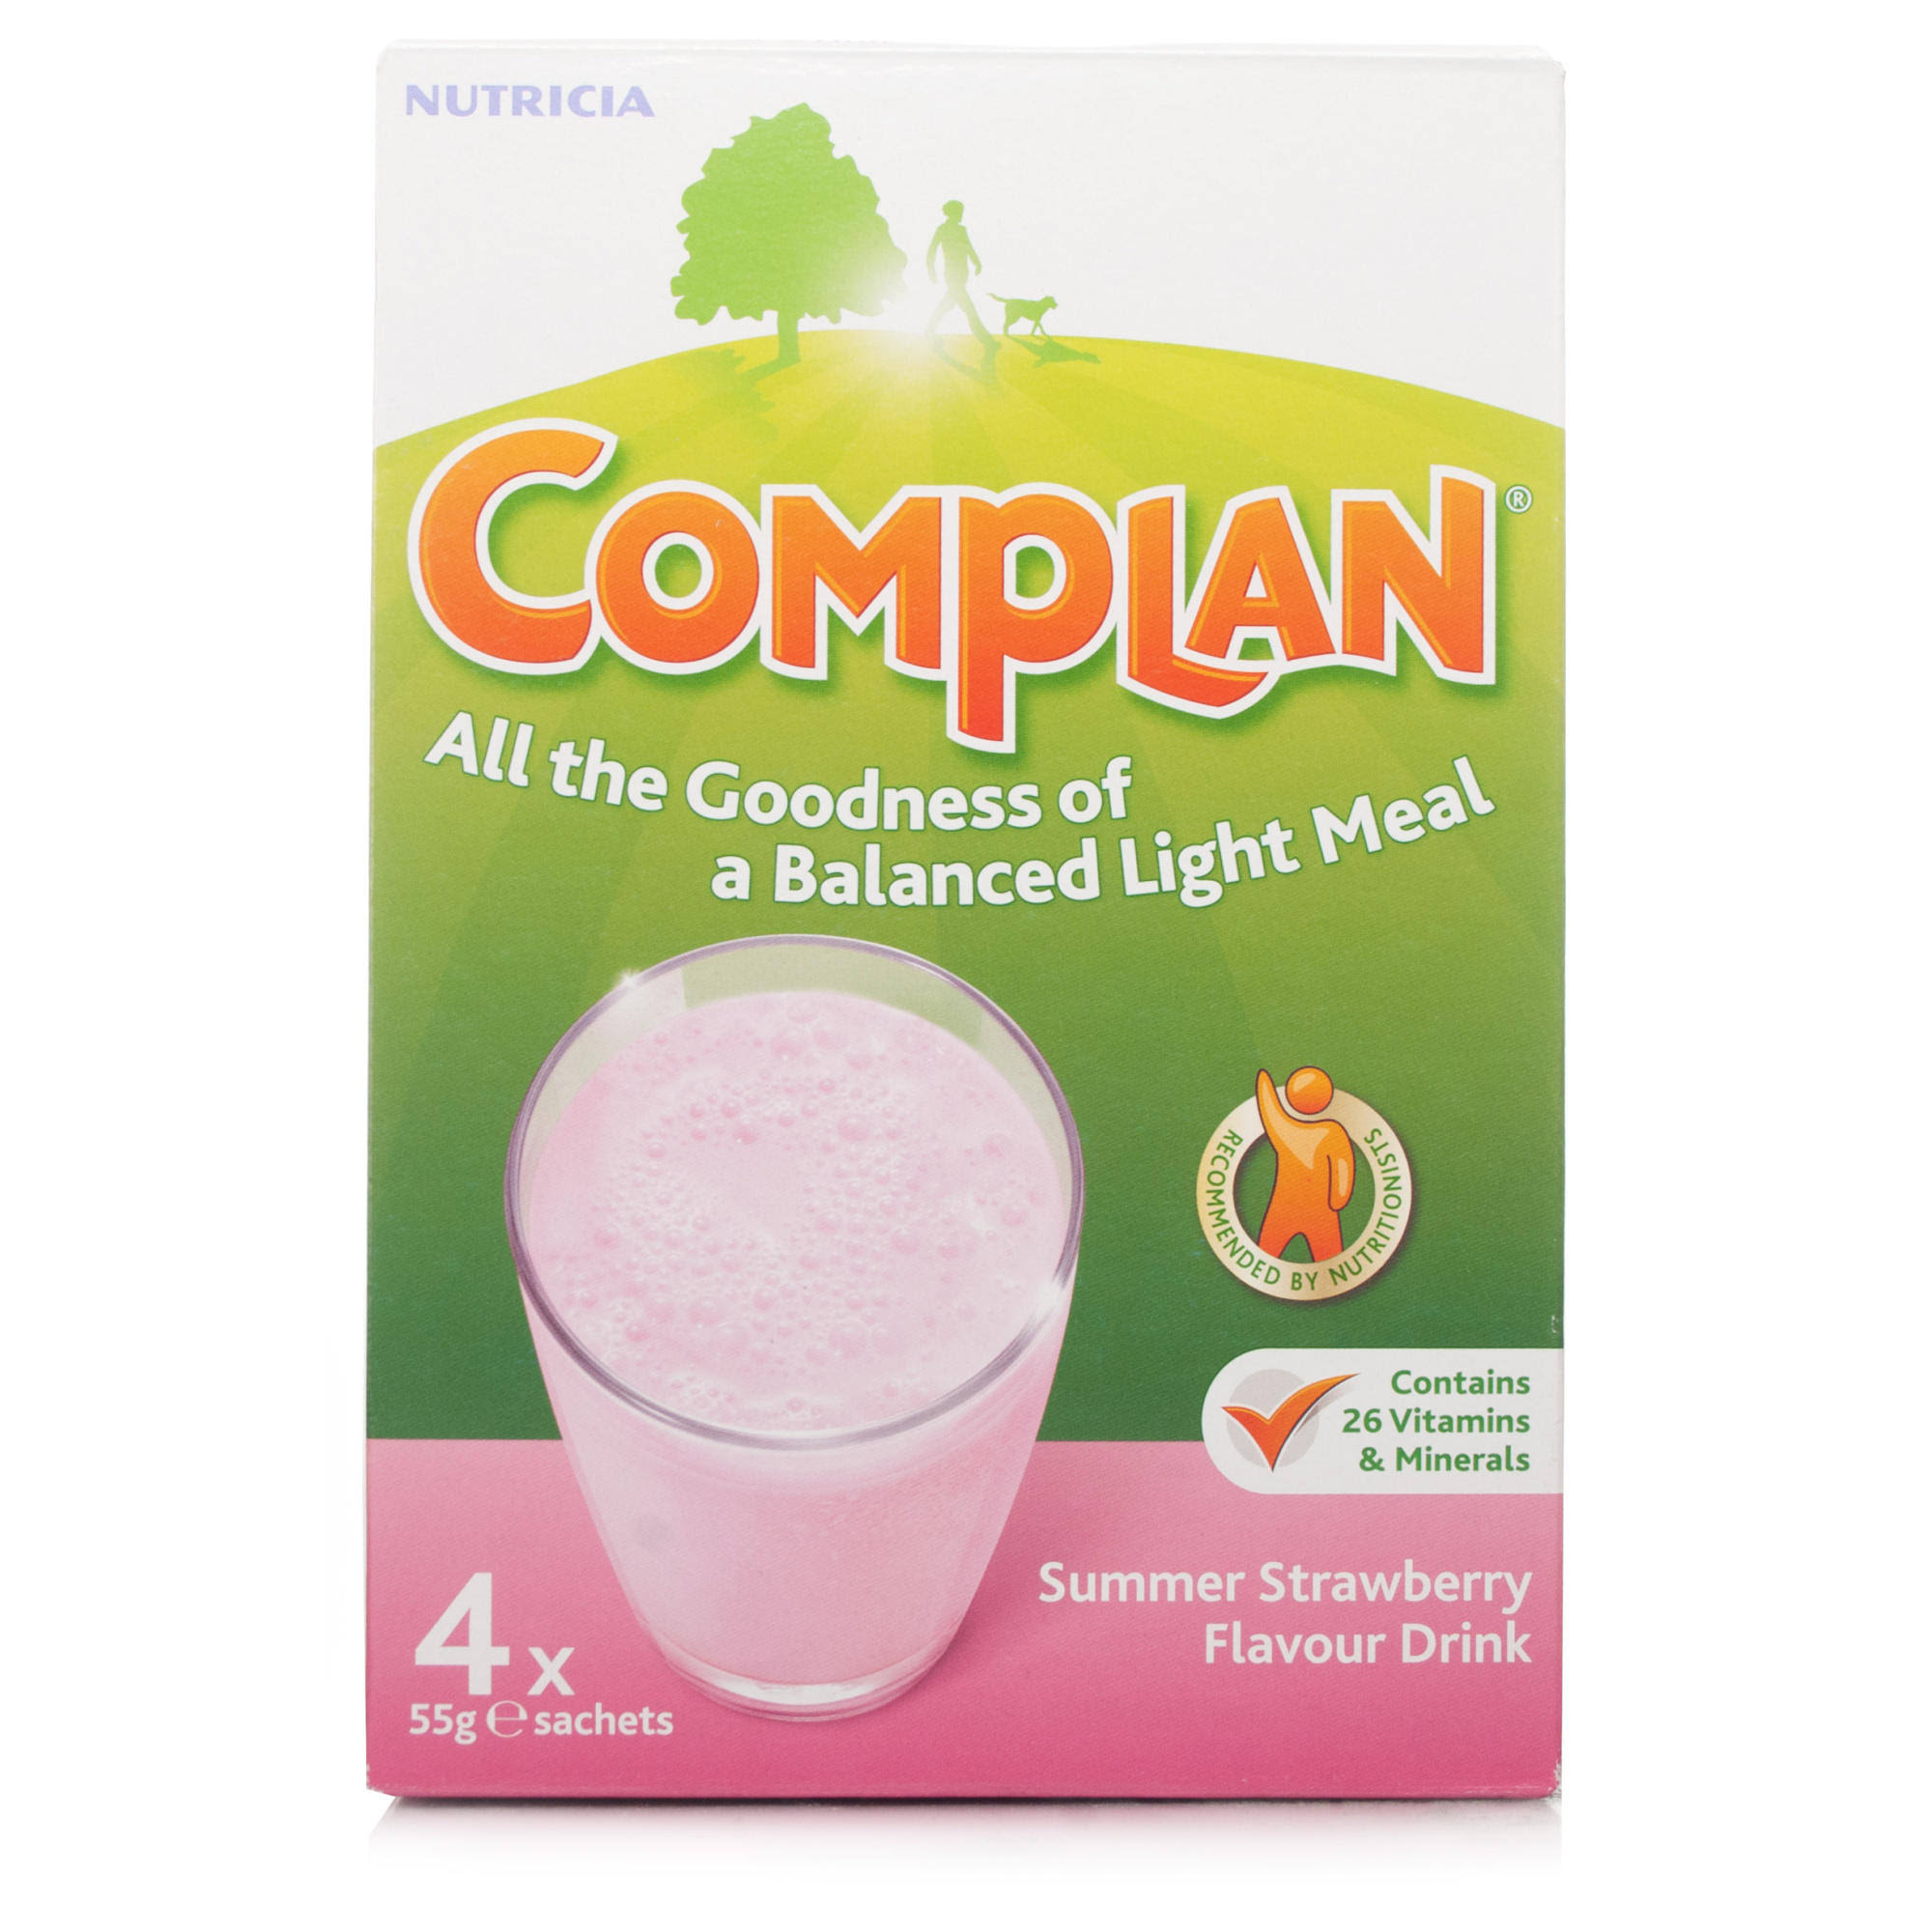 Complan Nutritious Vitamin Rich Drink - Summer Strawberry, 55g, 4 Count